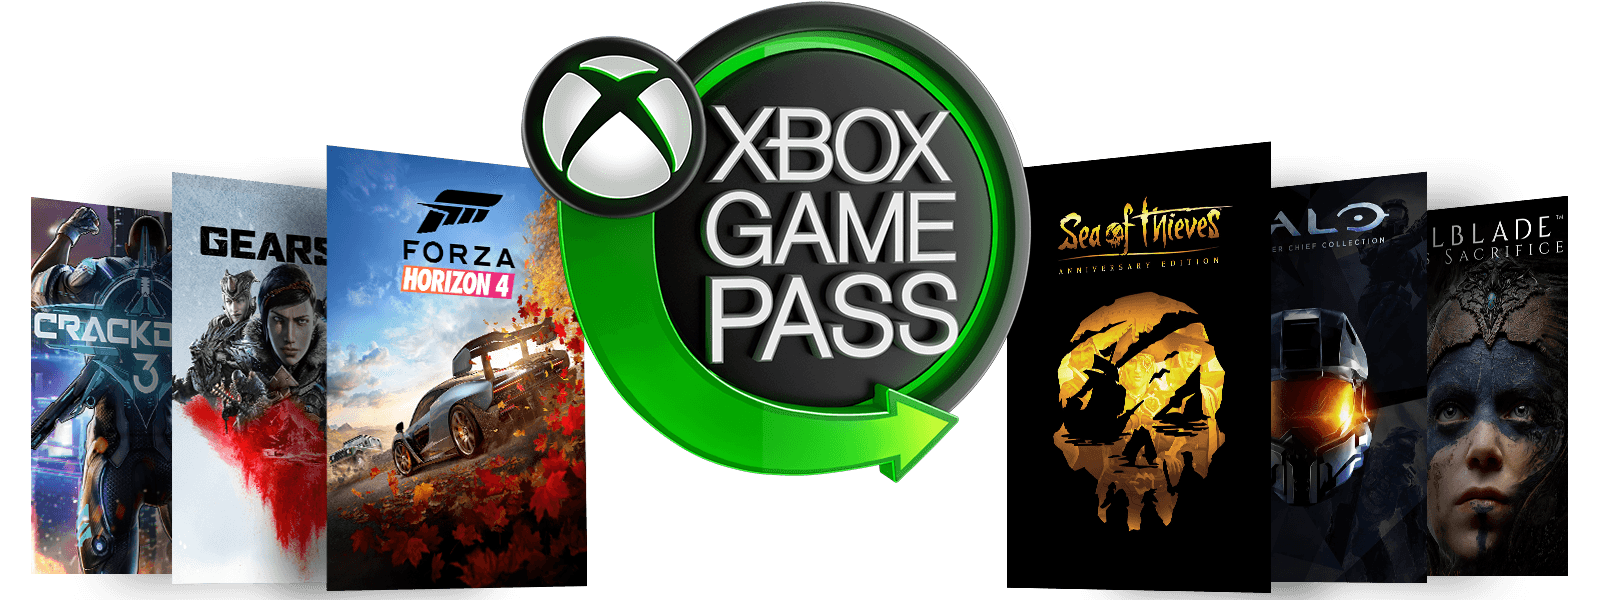 Image des boîtes de Sea of Thieves, PLAYERUNKNOWNS Battleground, Forza Horizon 4, Crackdown 3, Halo The Master Chief Collection et Hellblade Senuas Sacrifice entourant le logo néon de Xbox Game Pass